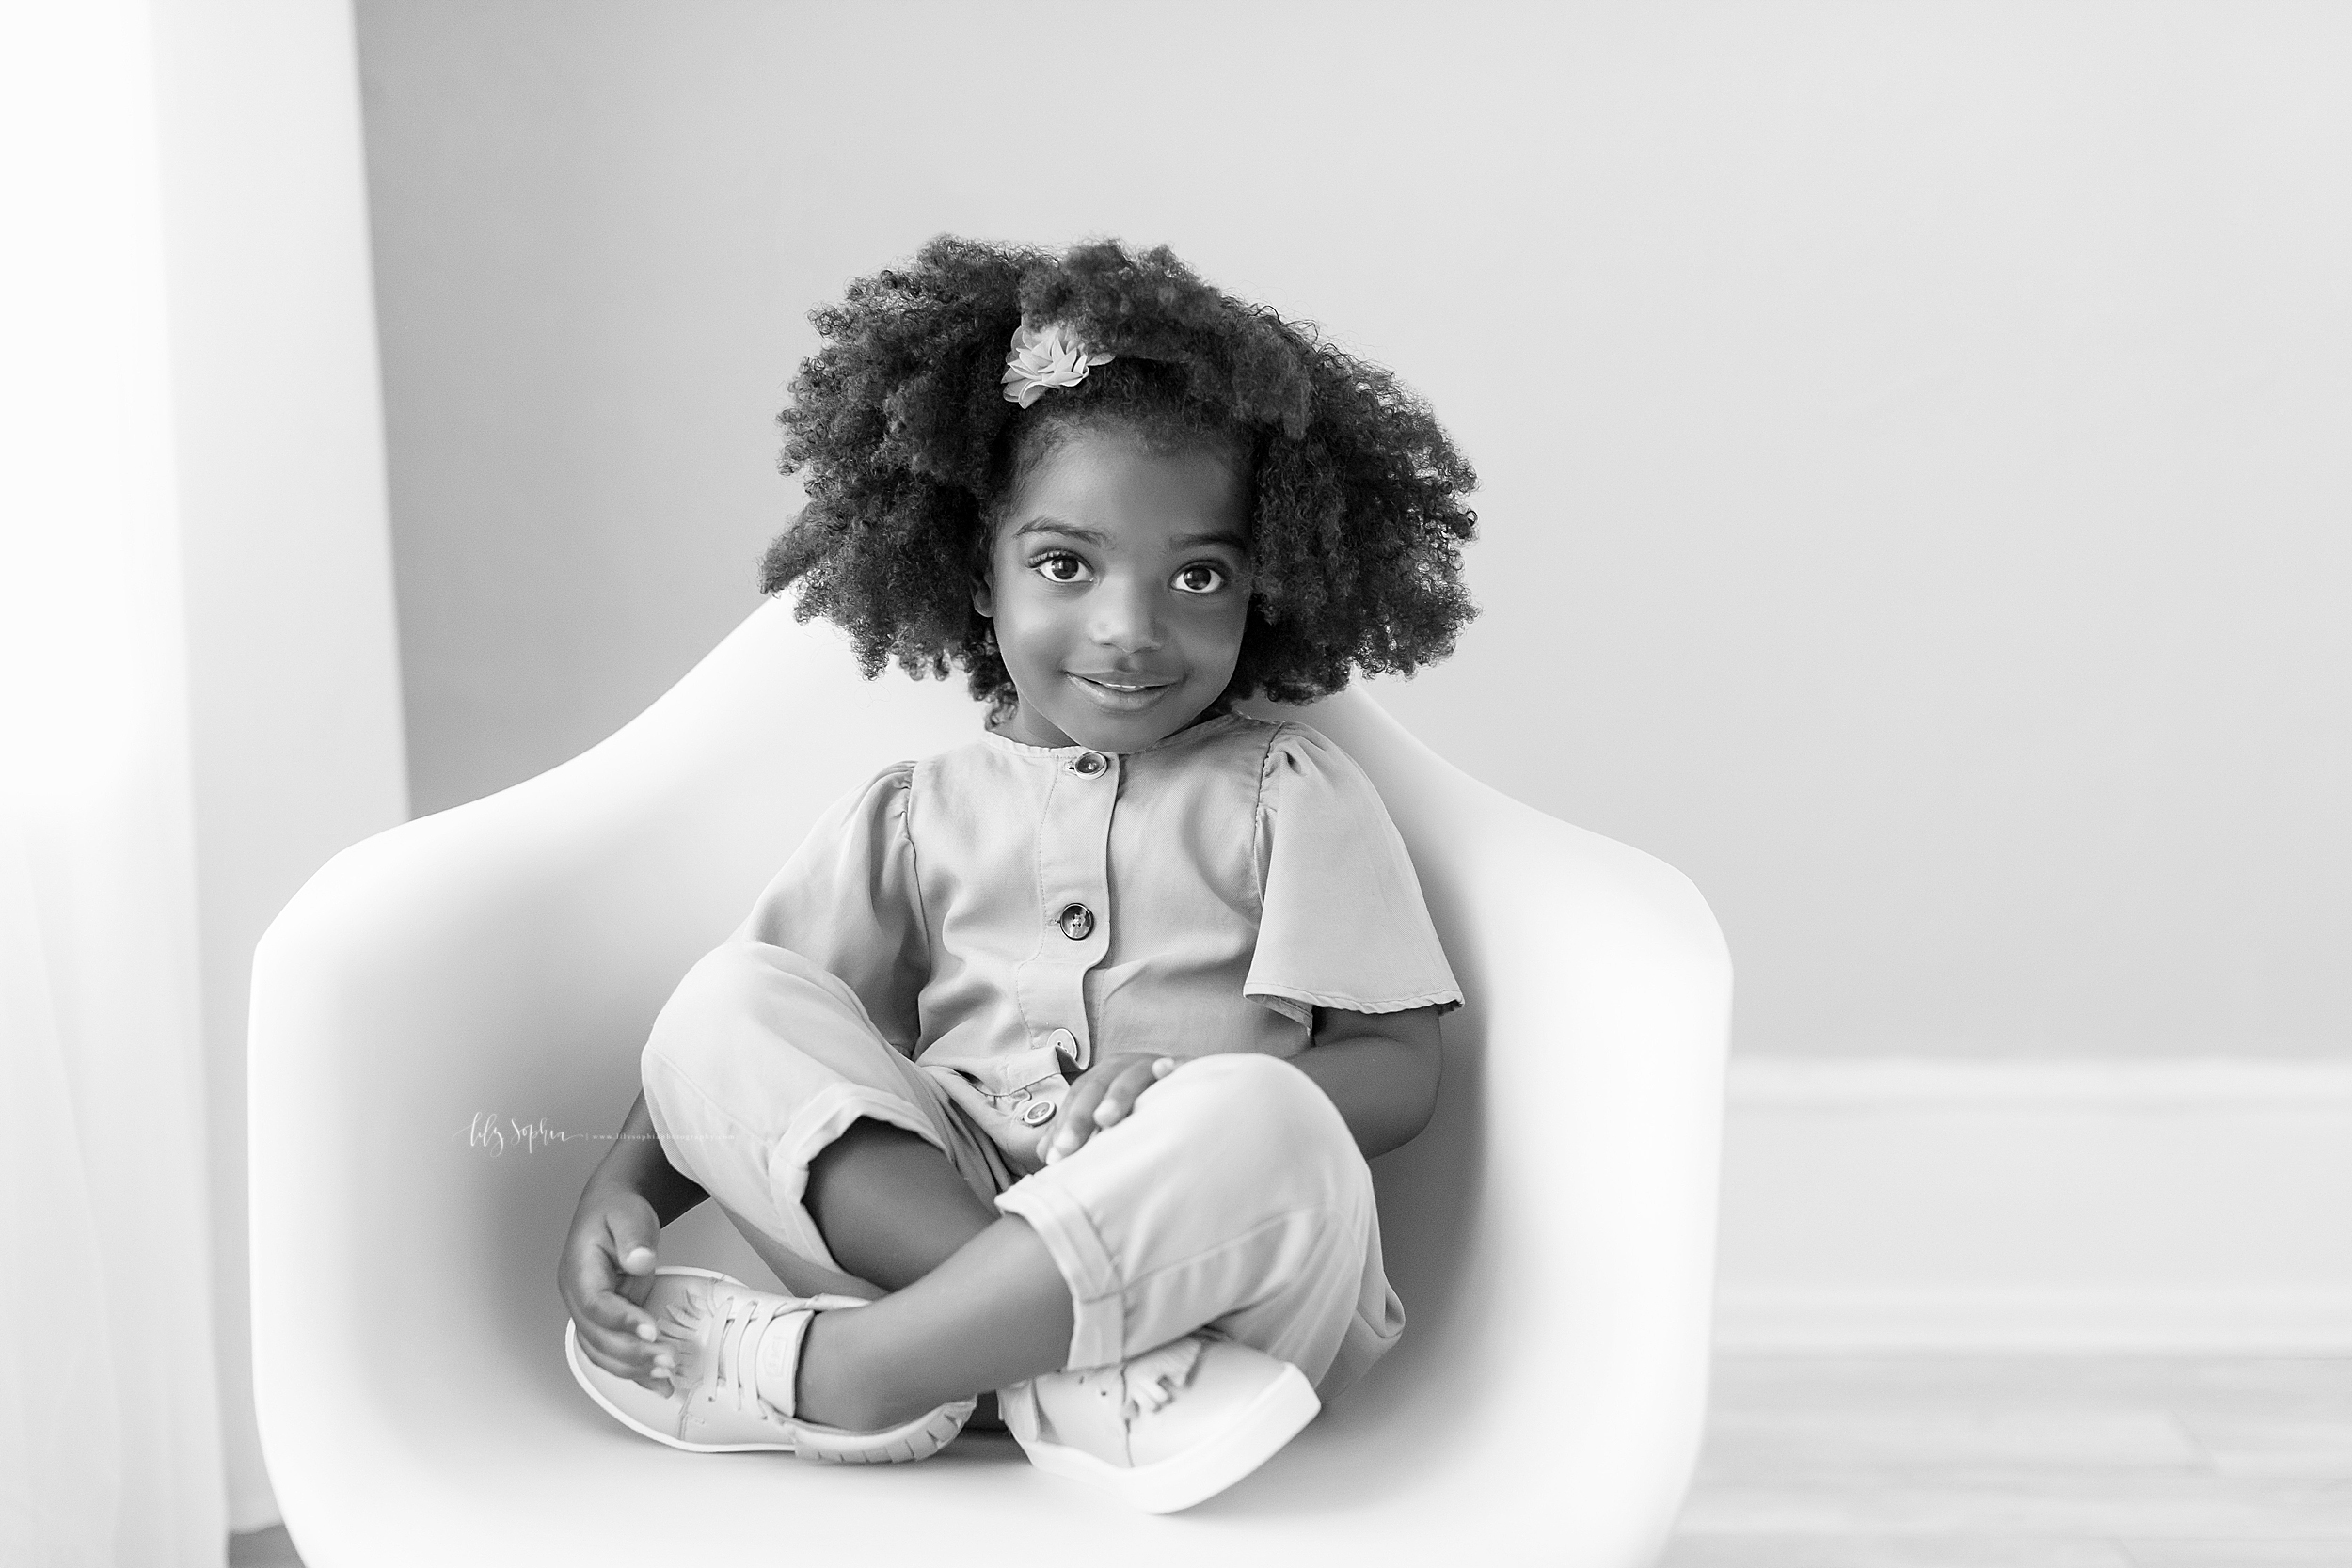 An African American girl sits cross-legged in a modern white chair.